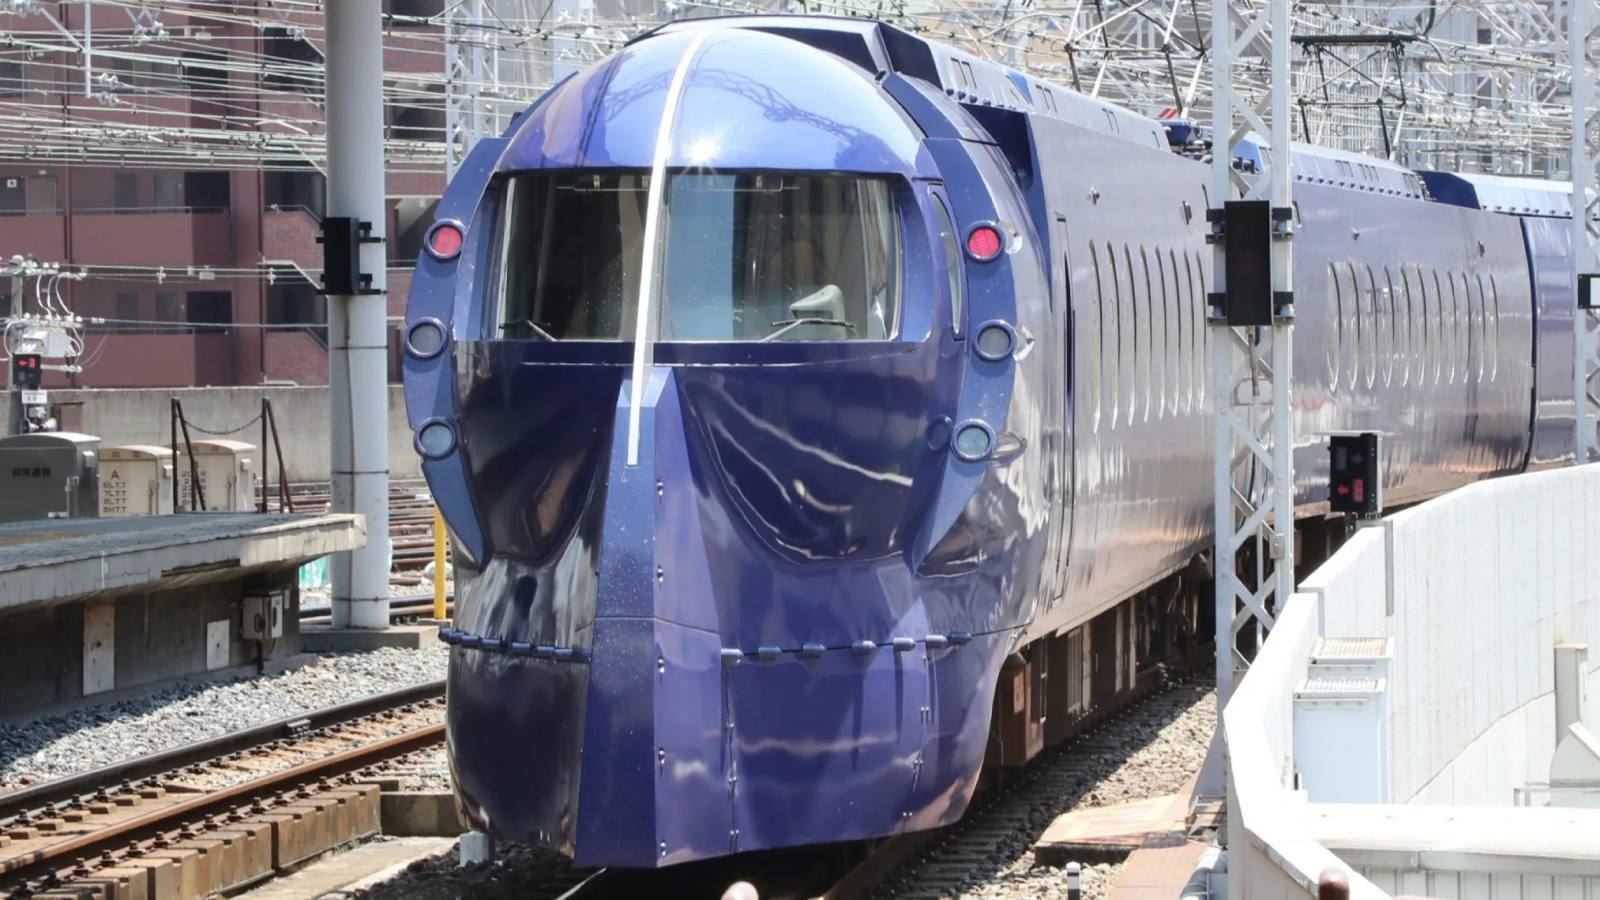 Japan's 'supreme' bullet train aims to impress Texas with